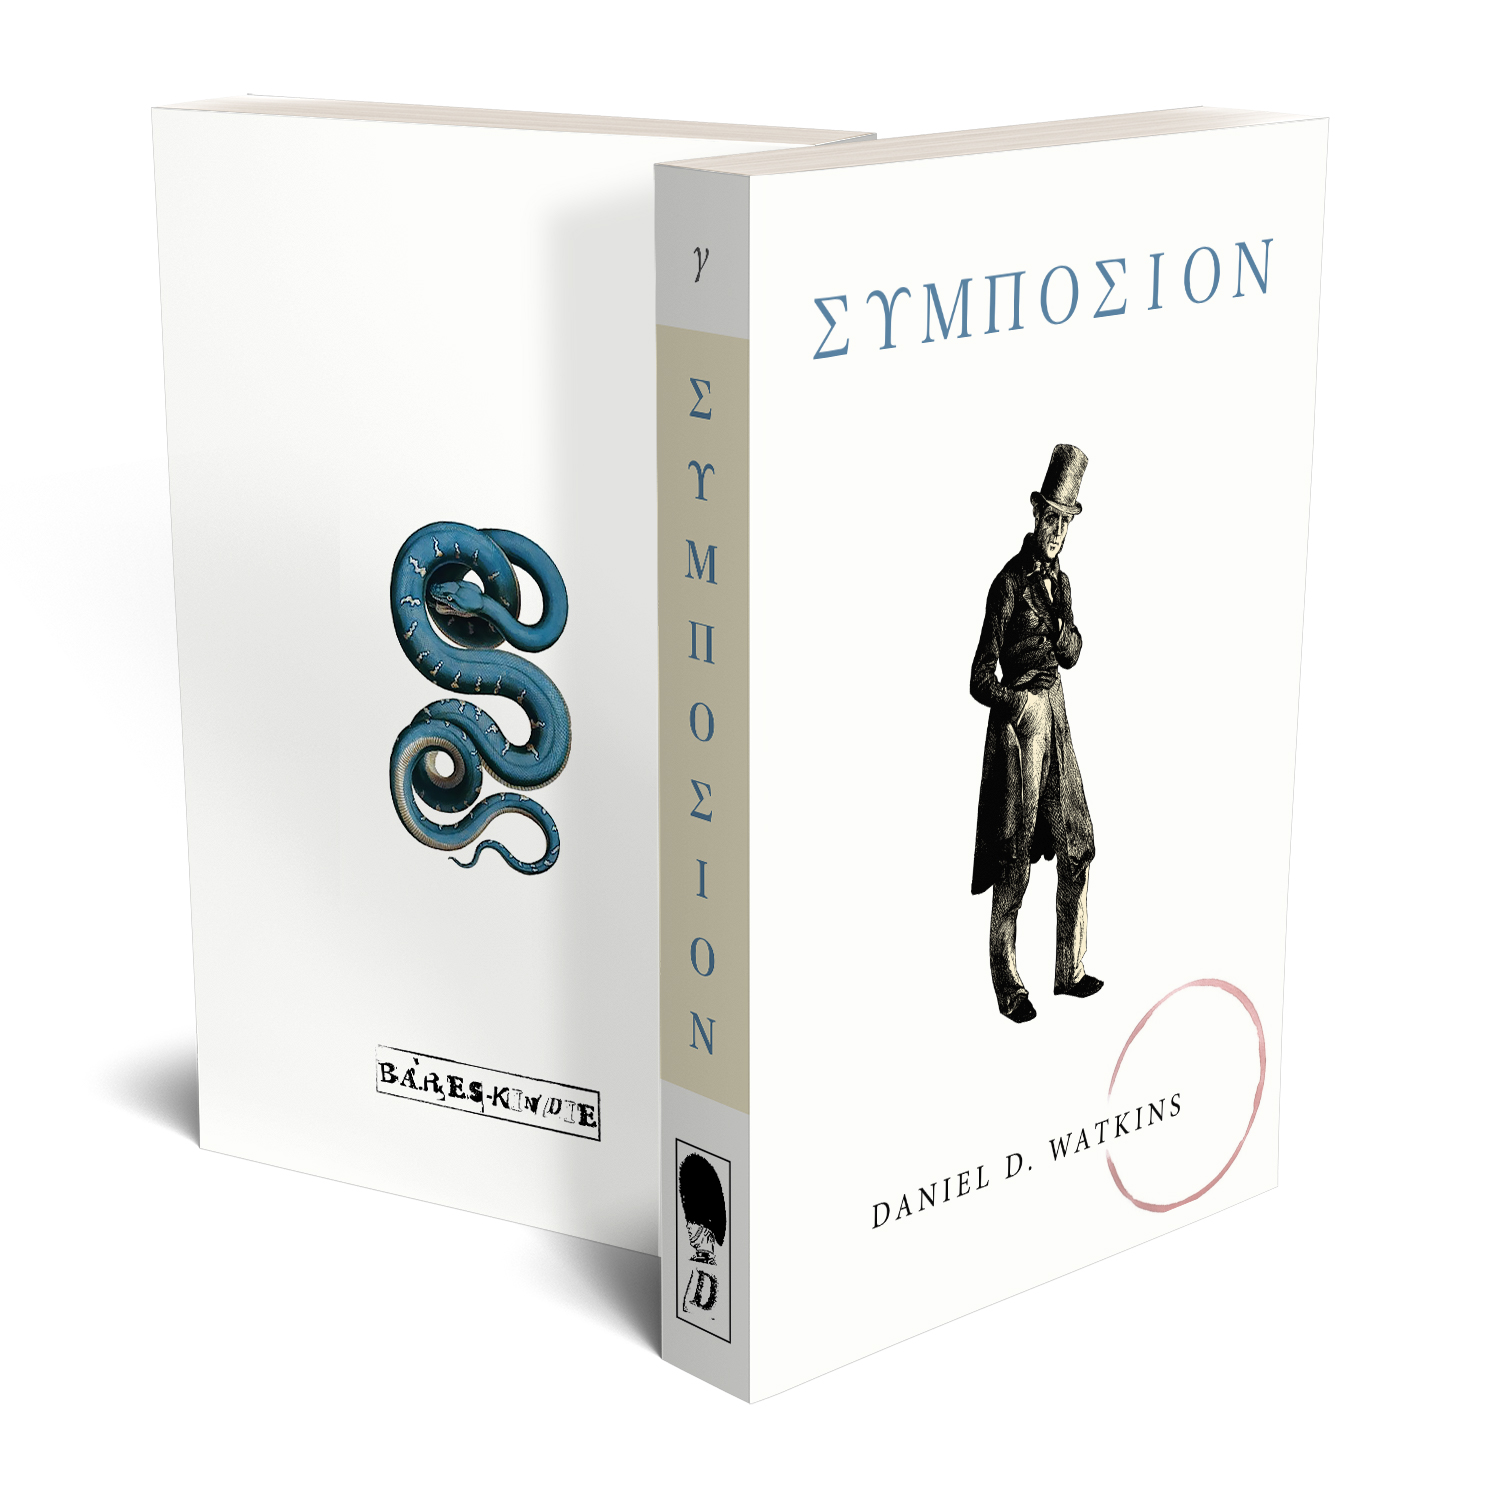 'Symposion' is a wildly esoteric three part novel. The author is Daniel C Watkins. The book cover design and interior formatting are by Mark Thomas. To learn more about what Mark could do for your book, please visit coverness.com.